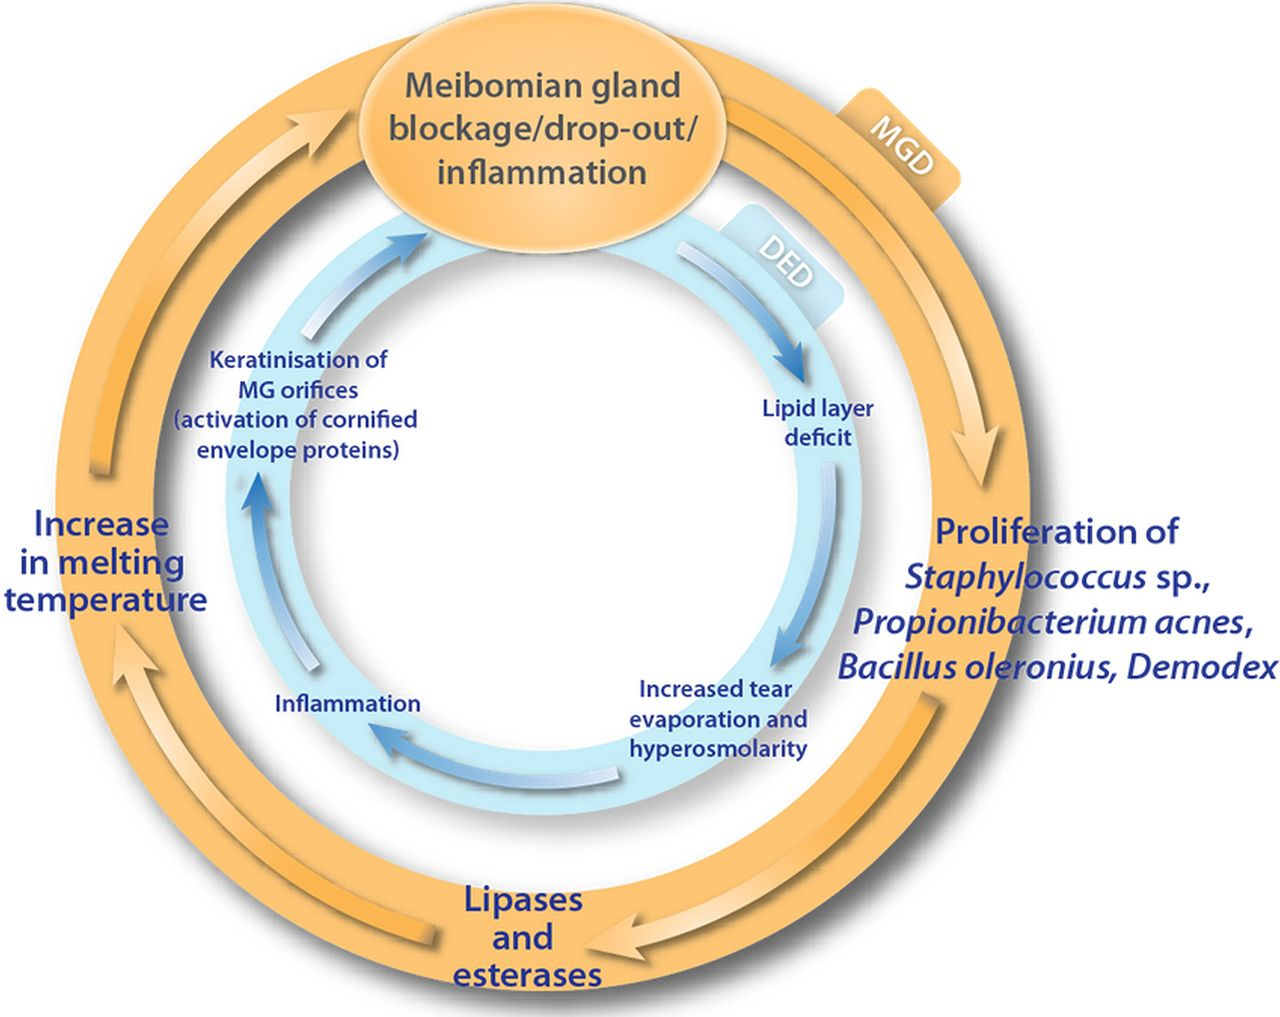 Revisiting The Vicious Circle Of Dry Eye Disease A Focus On The